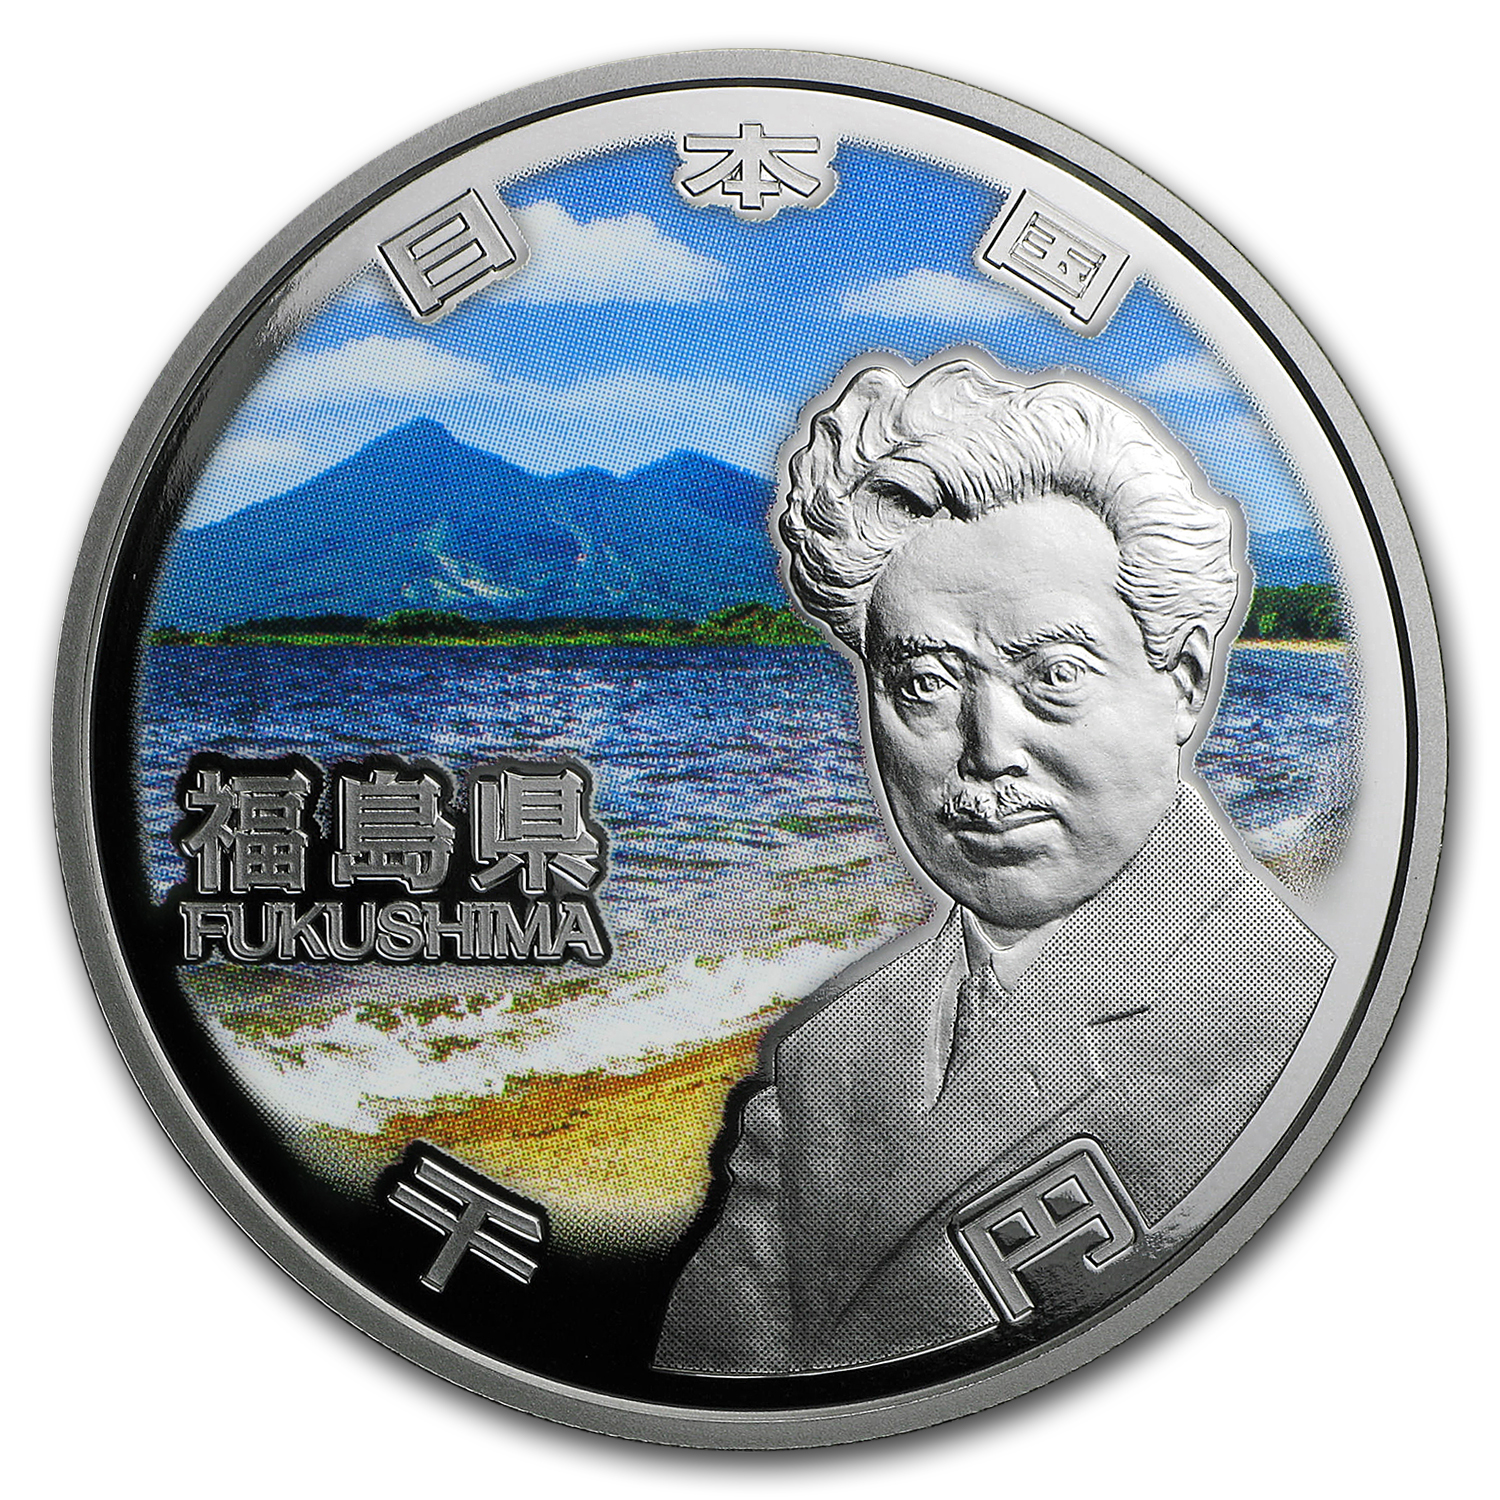 2016 Japan 1 oz Silver 1,000 Yen Fukushima Prefecture Proof